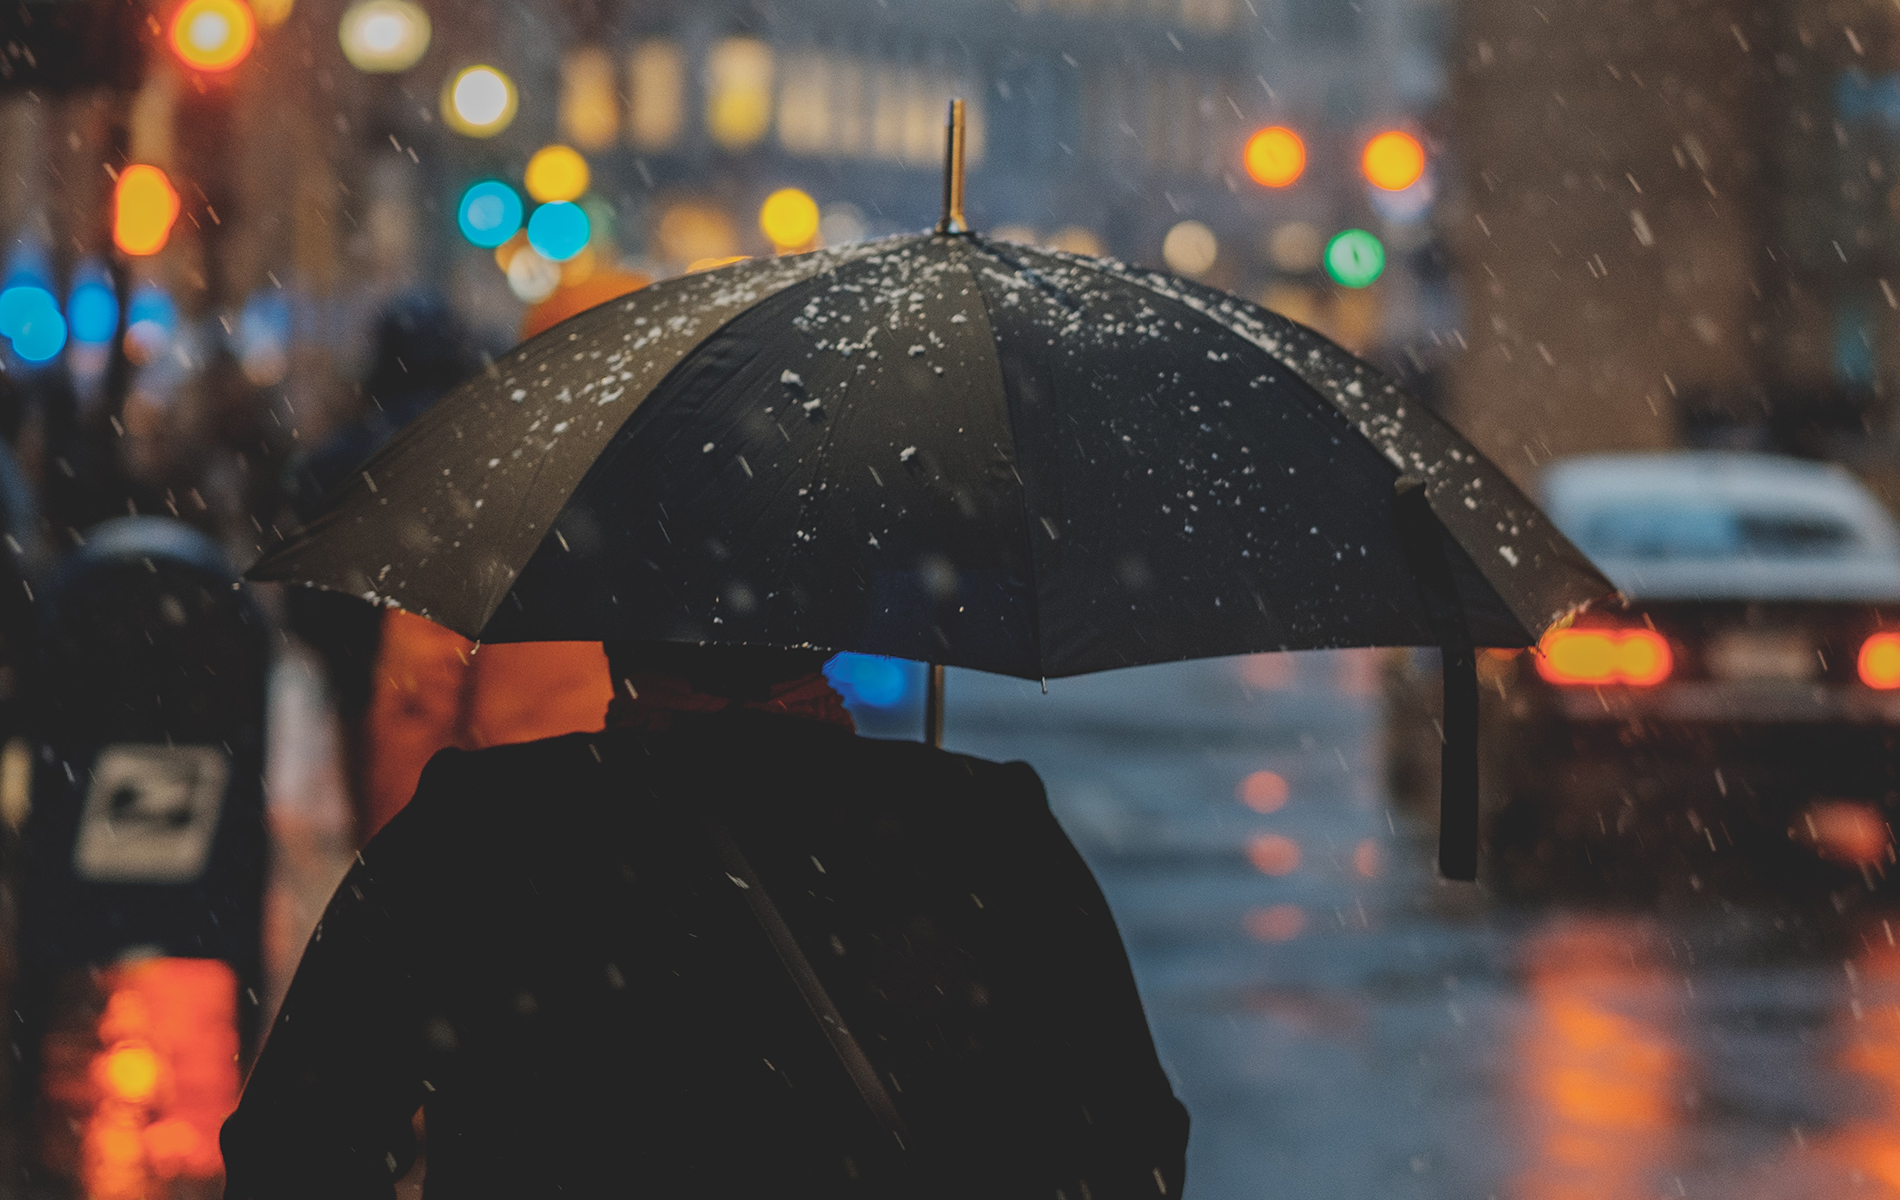 Person with umbrella in the snow at night, looking down a busy street